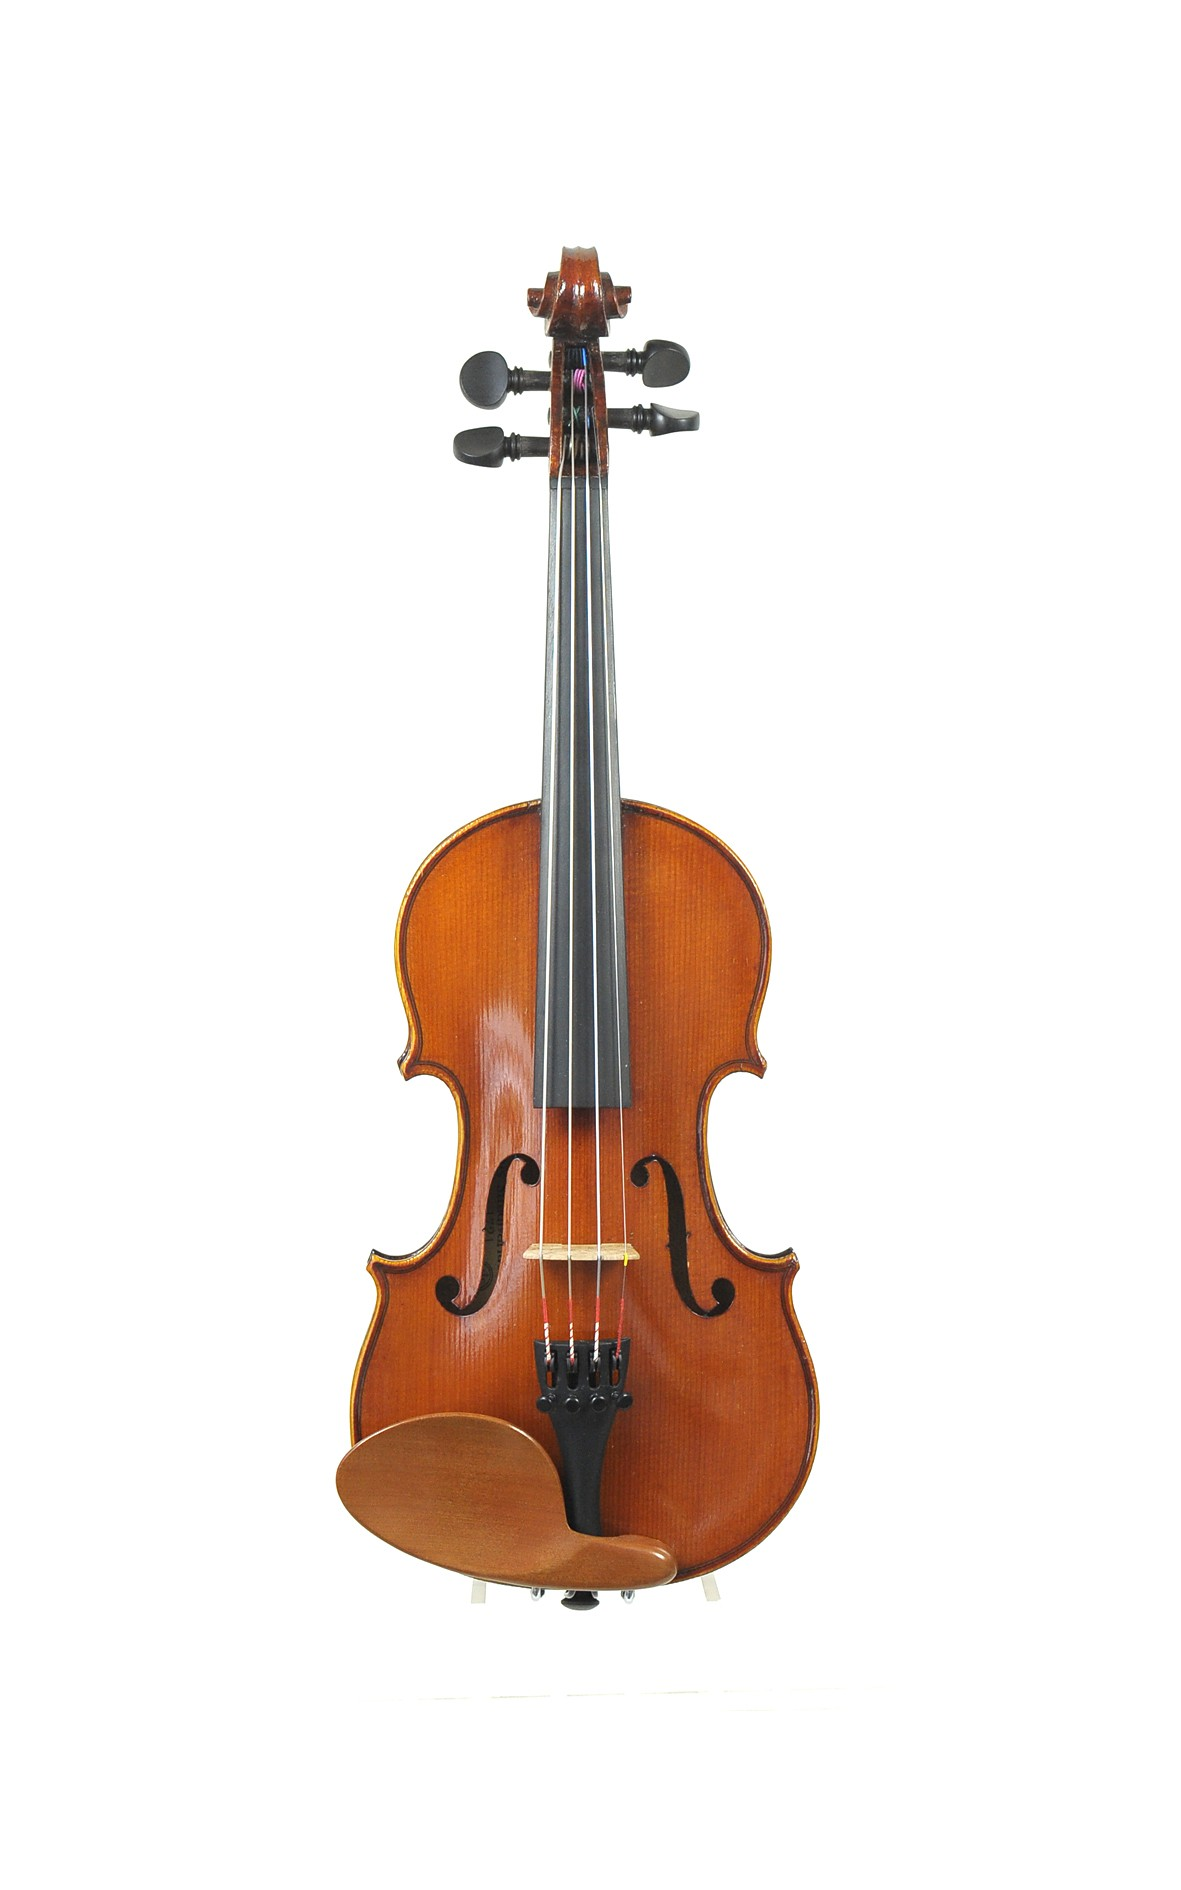 1/4 violin, French - top view